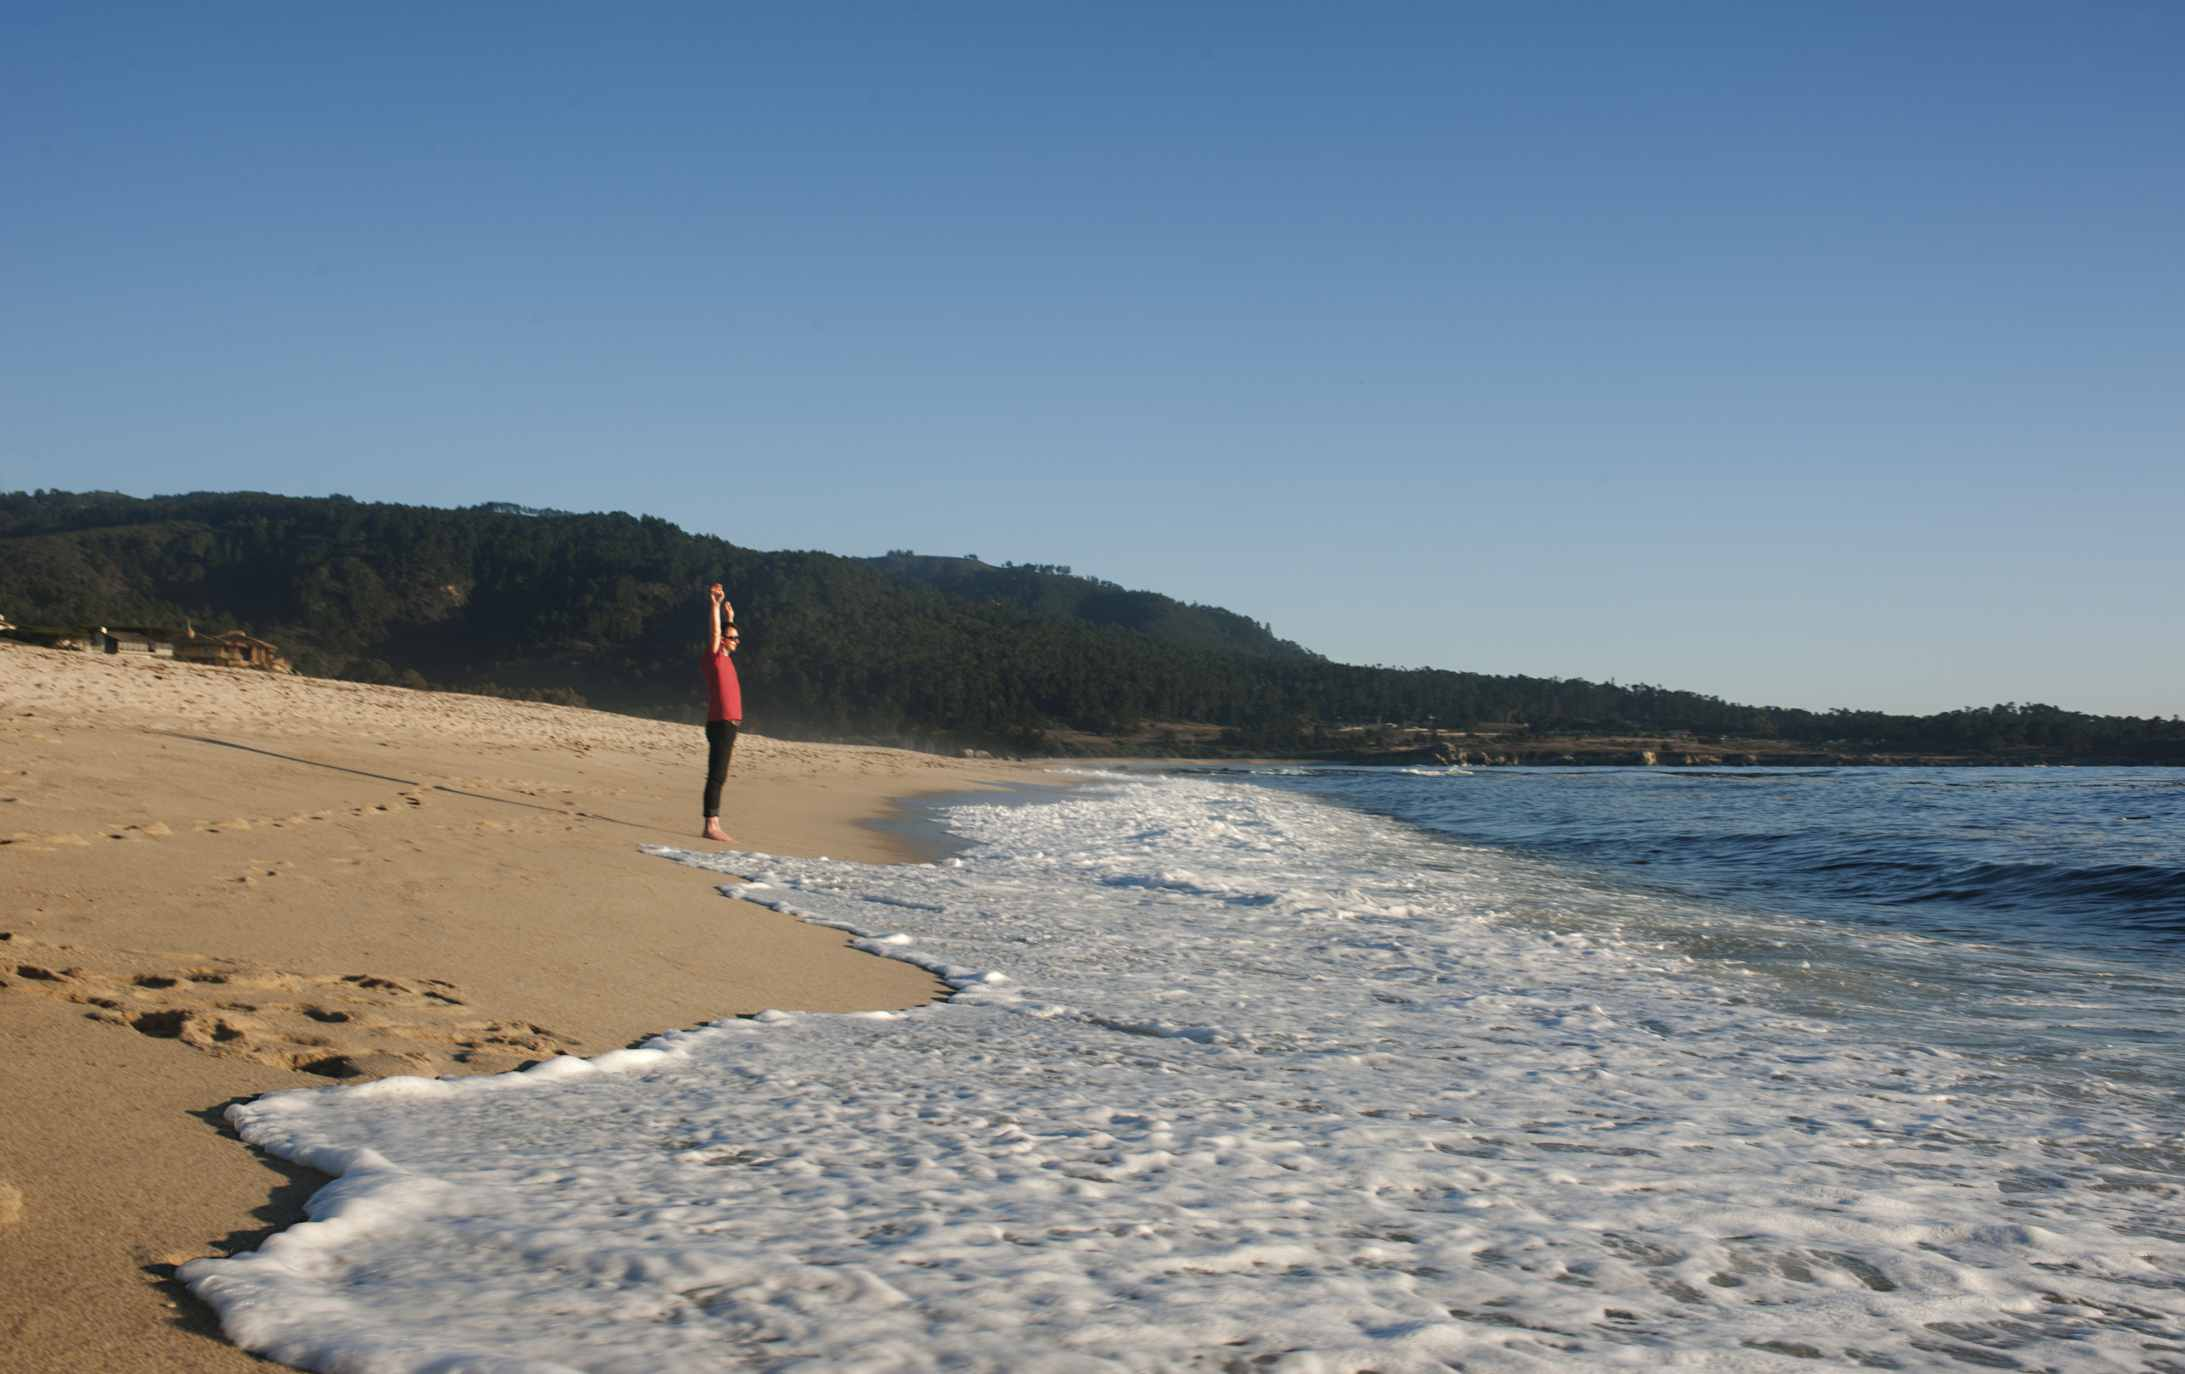 Afternoon at Carmel River State Beach